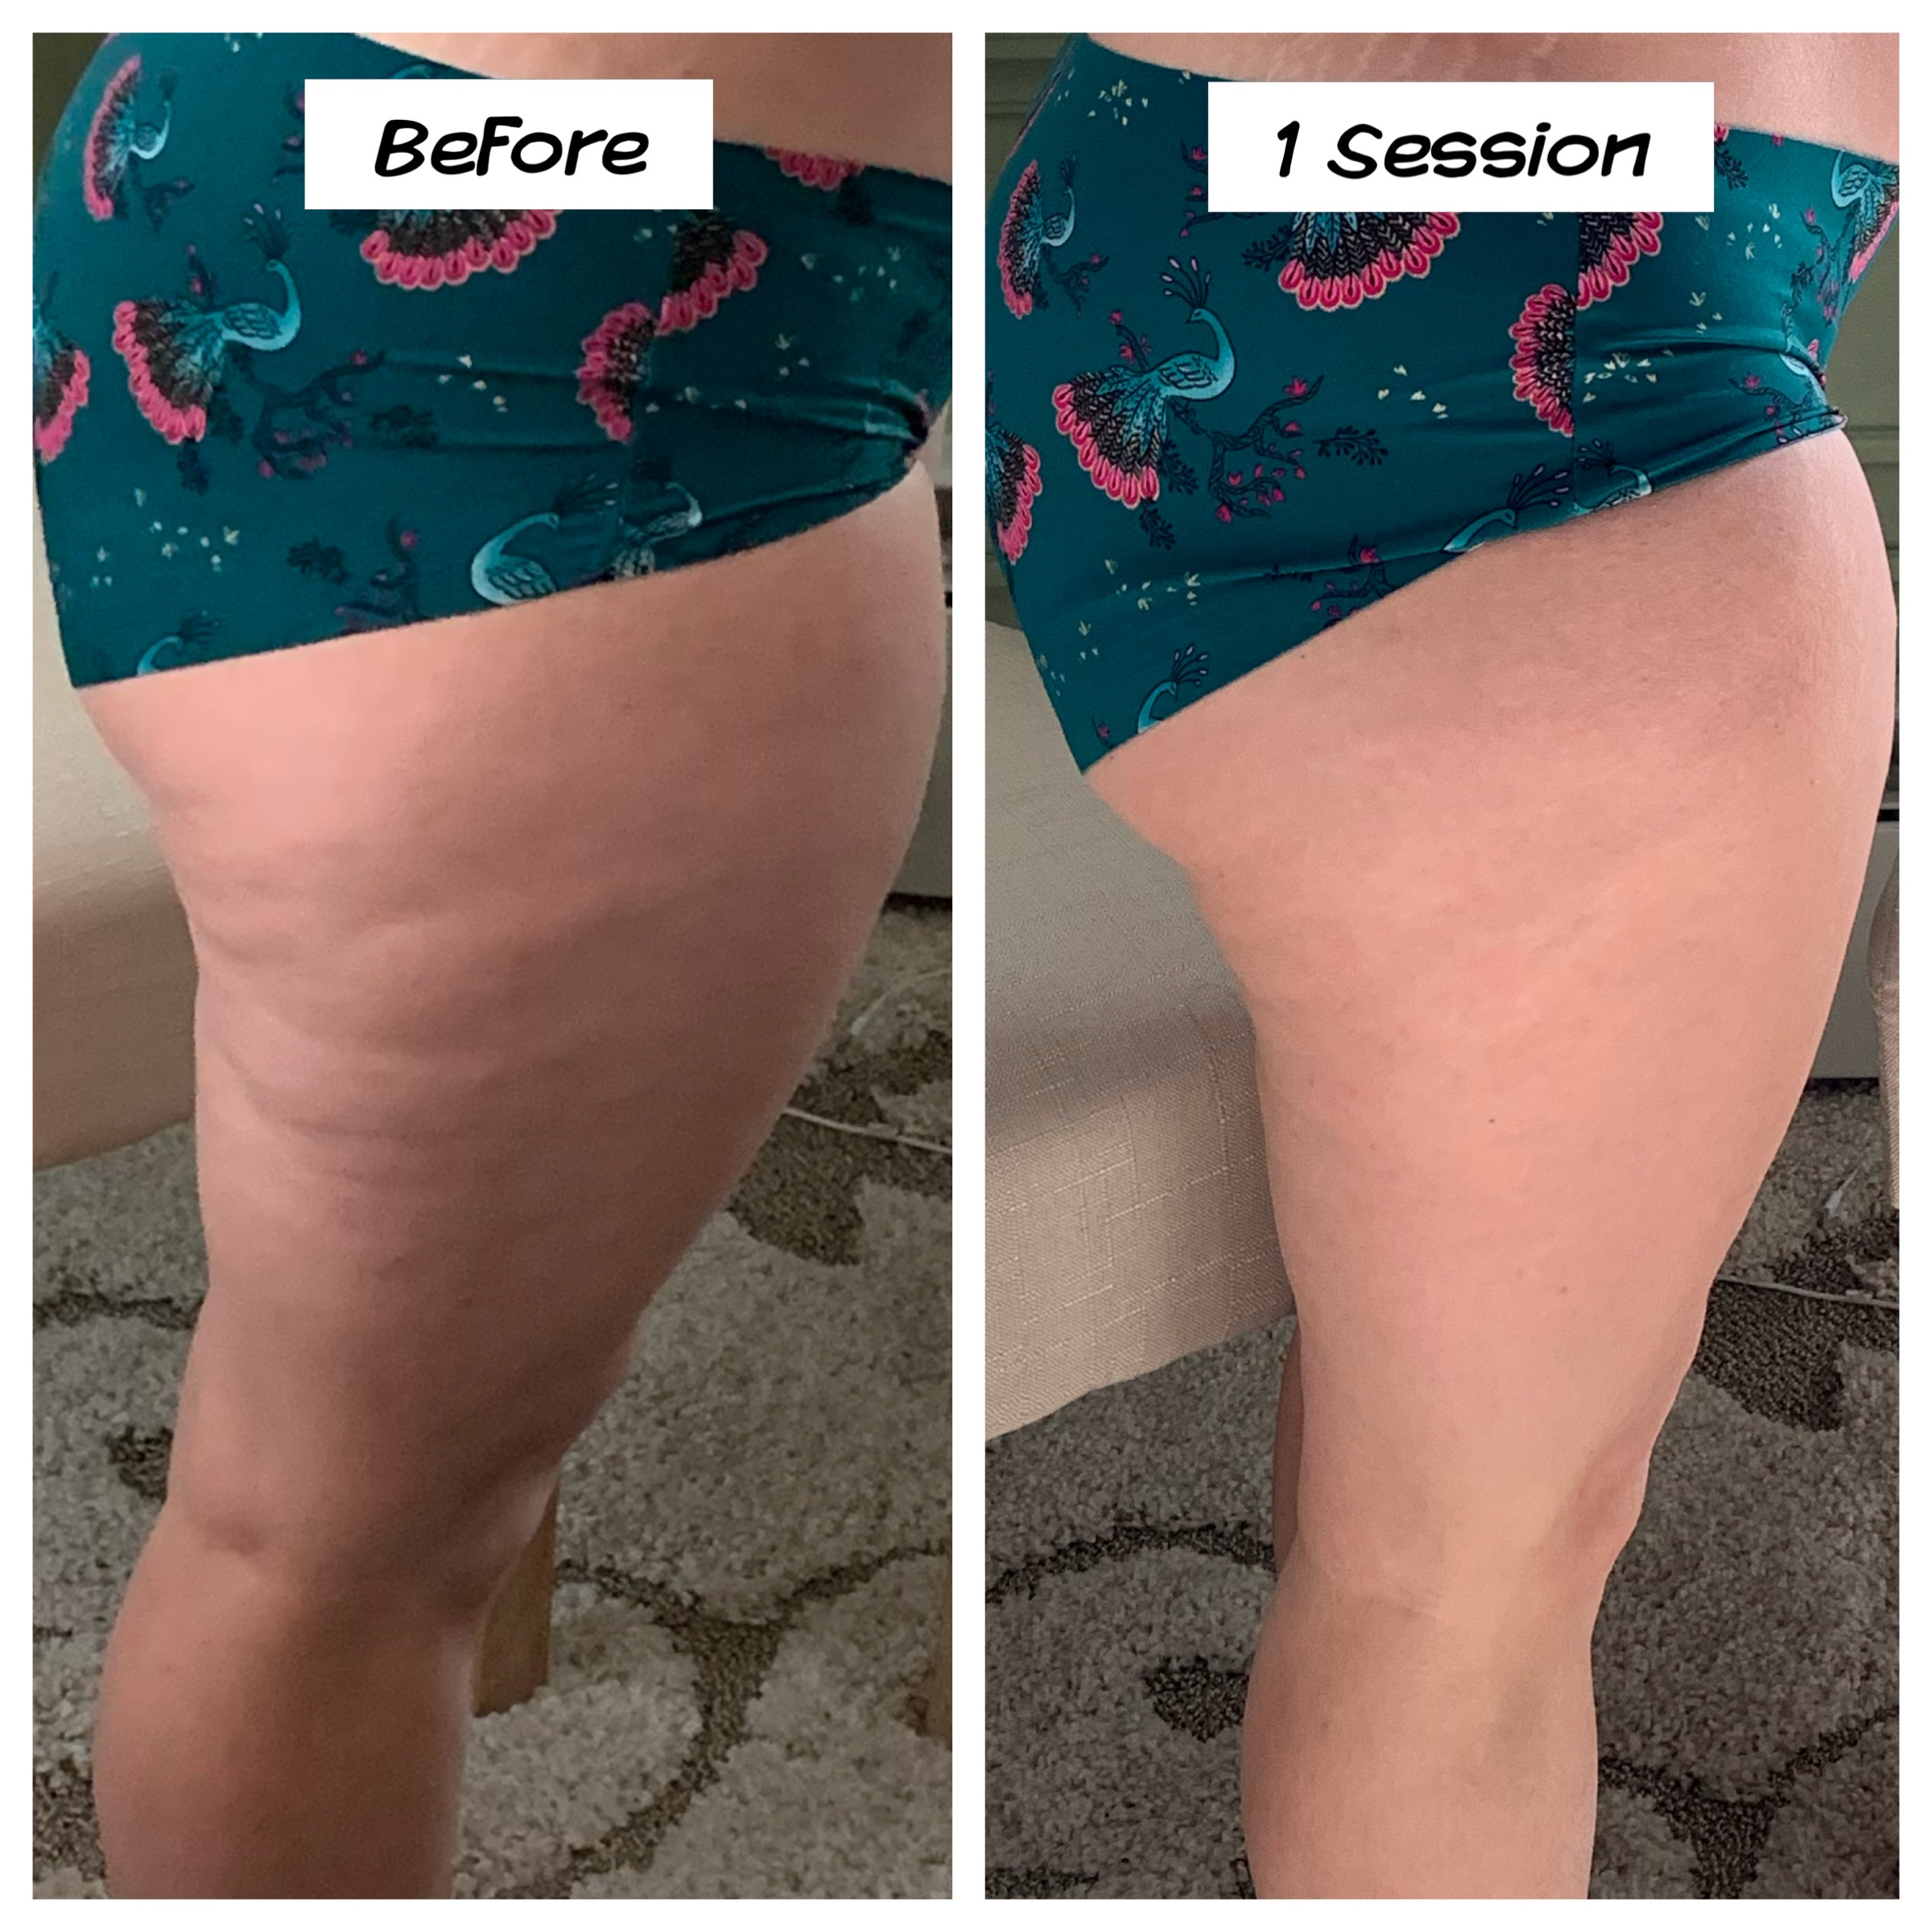 Cavitation Lipo Leg Slimming and Smoothi